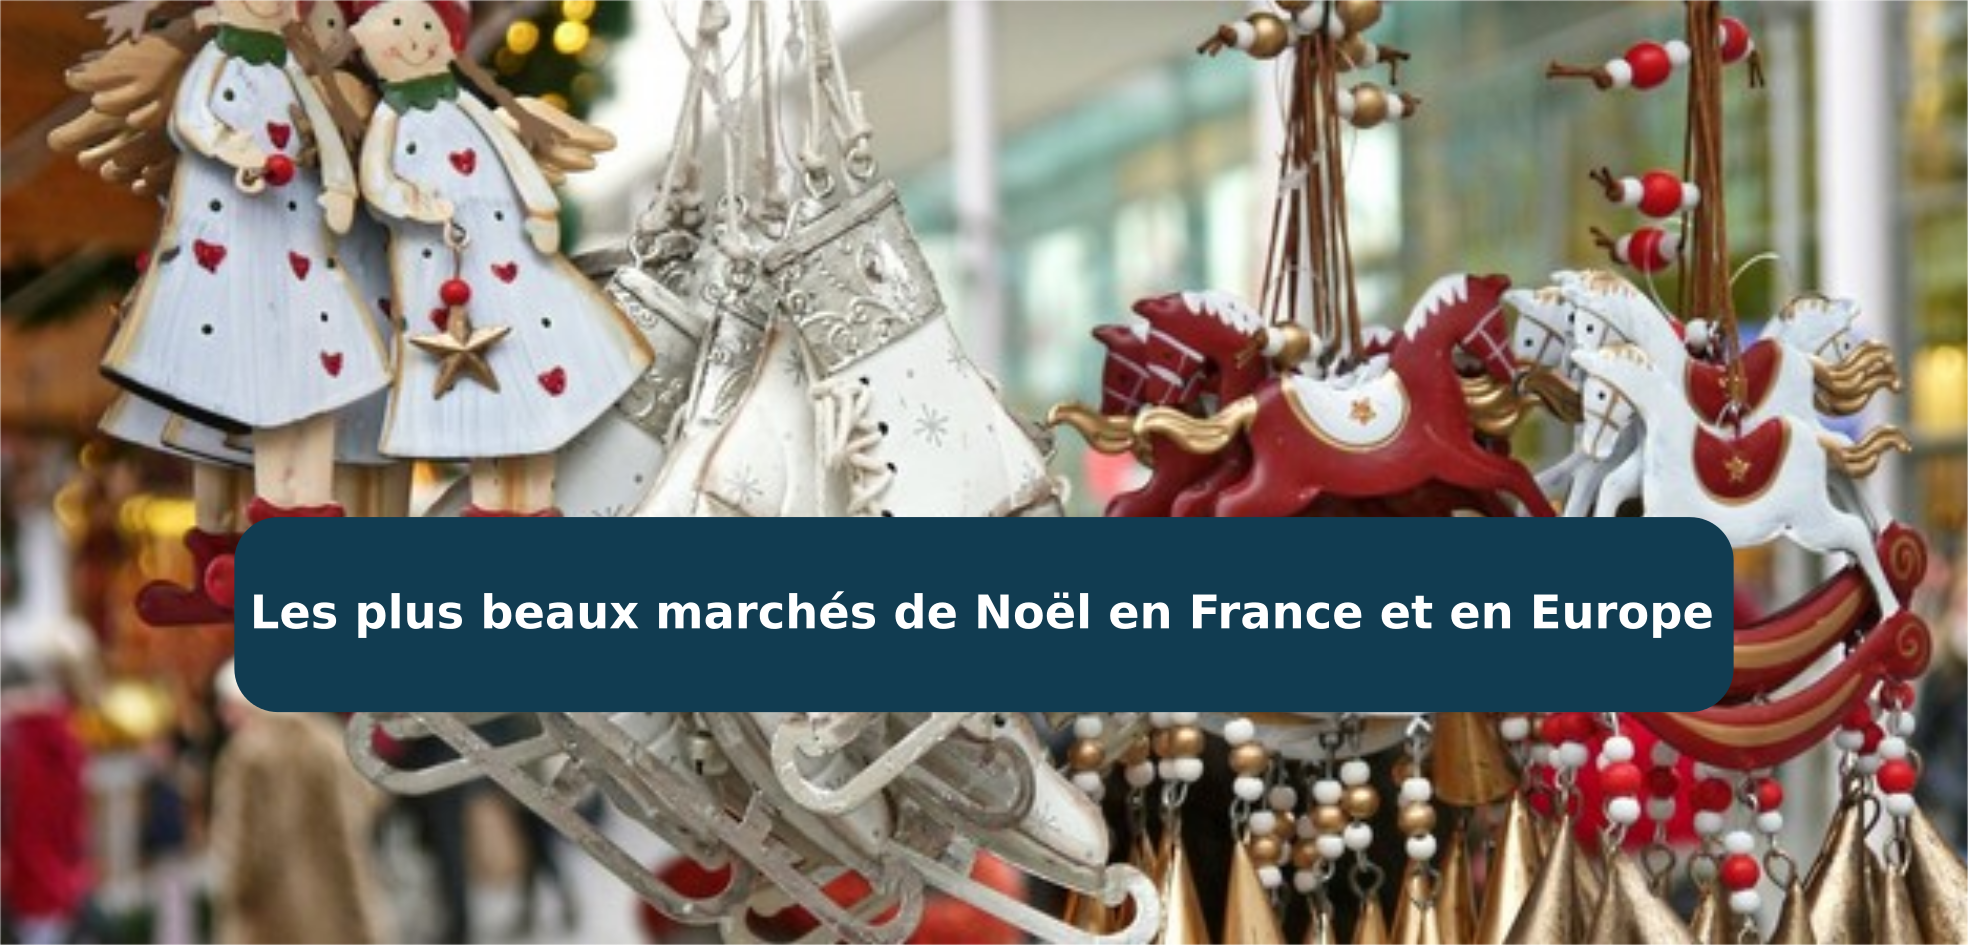 Les plus beaux march s de no l en france et en europe 2016 comparabus blog - Les plus beaux marches de noel ...